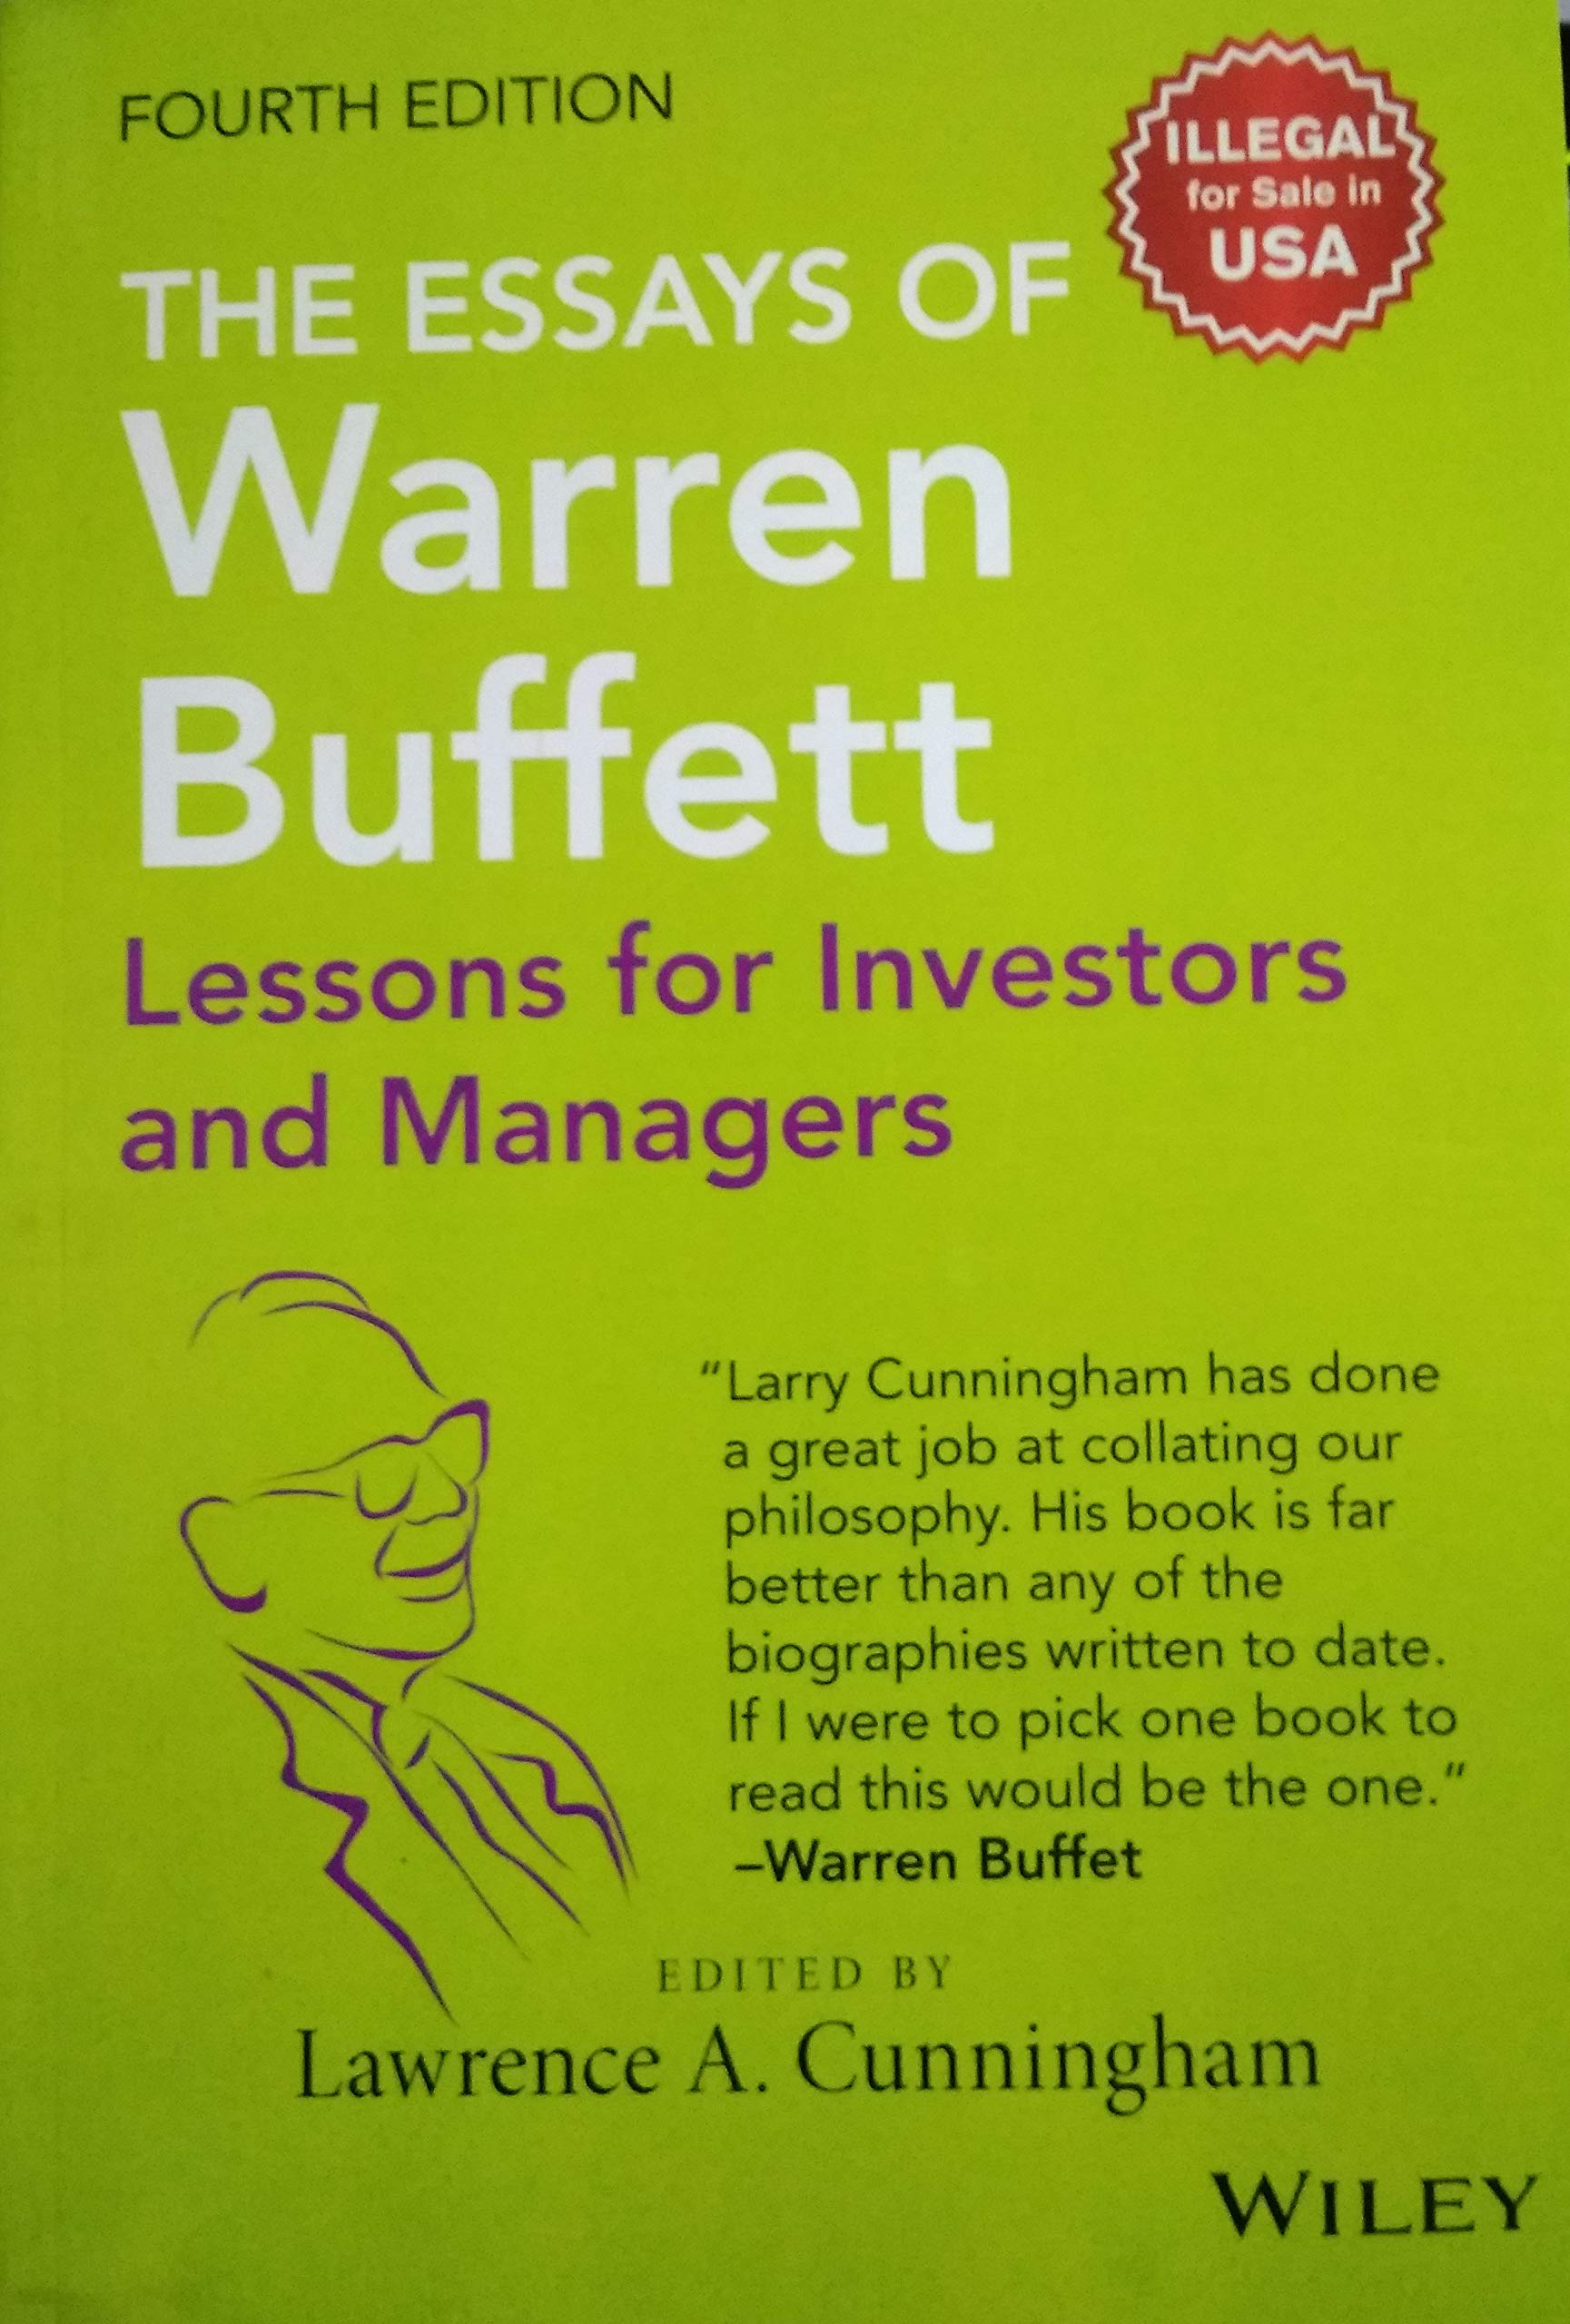 006 Essays Of Warren Buffett 81k2r32ddul Essay Top 4th Edition The Pdf Free Full